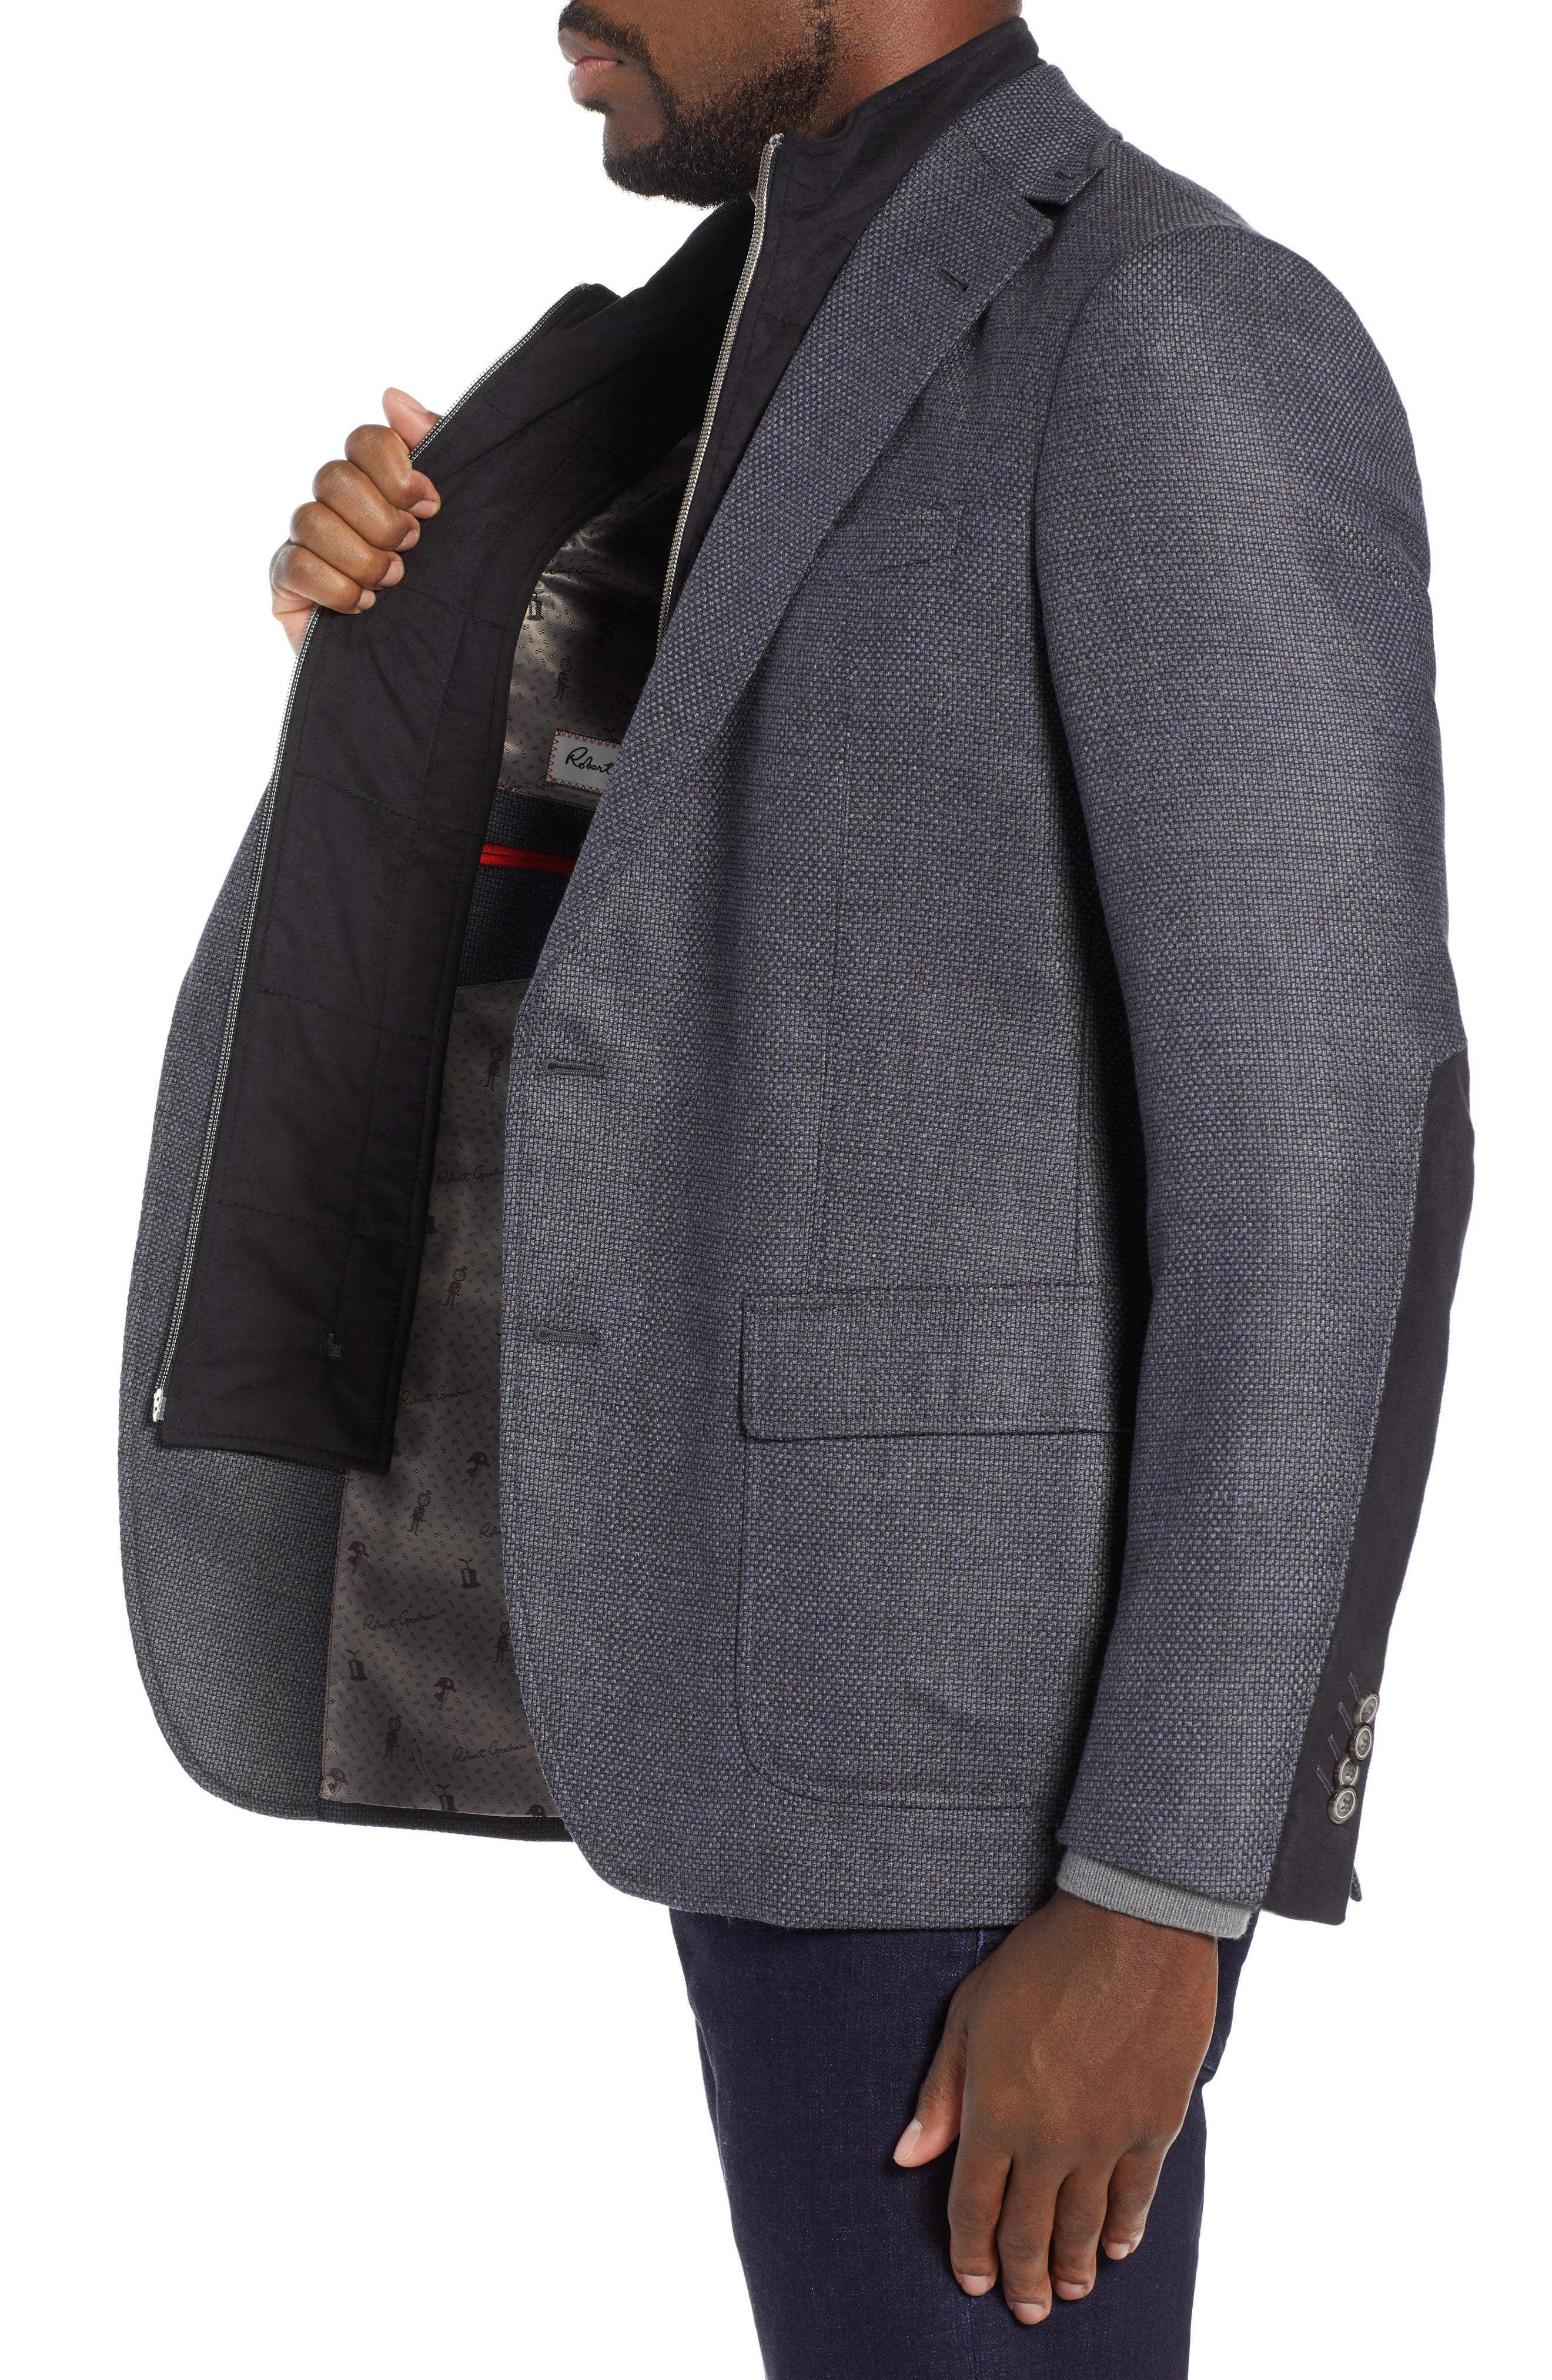 Downhill Sport Coat with Removable Bib,                             Alternate thumbnail 3, color,                             NAVY